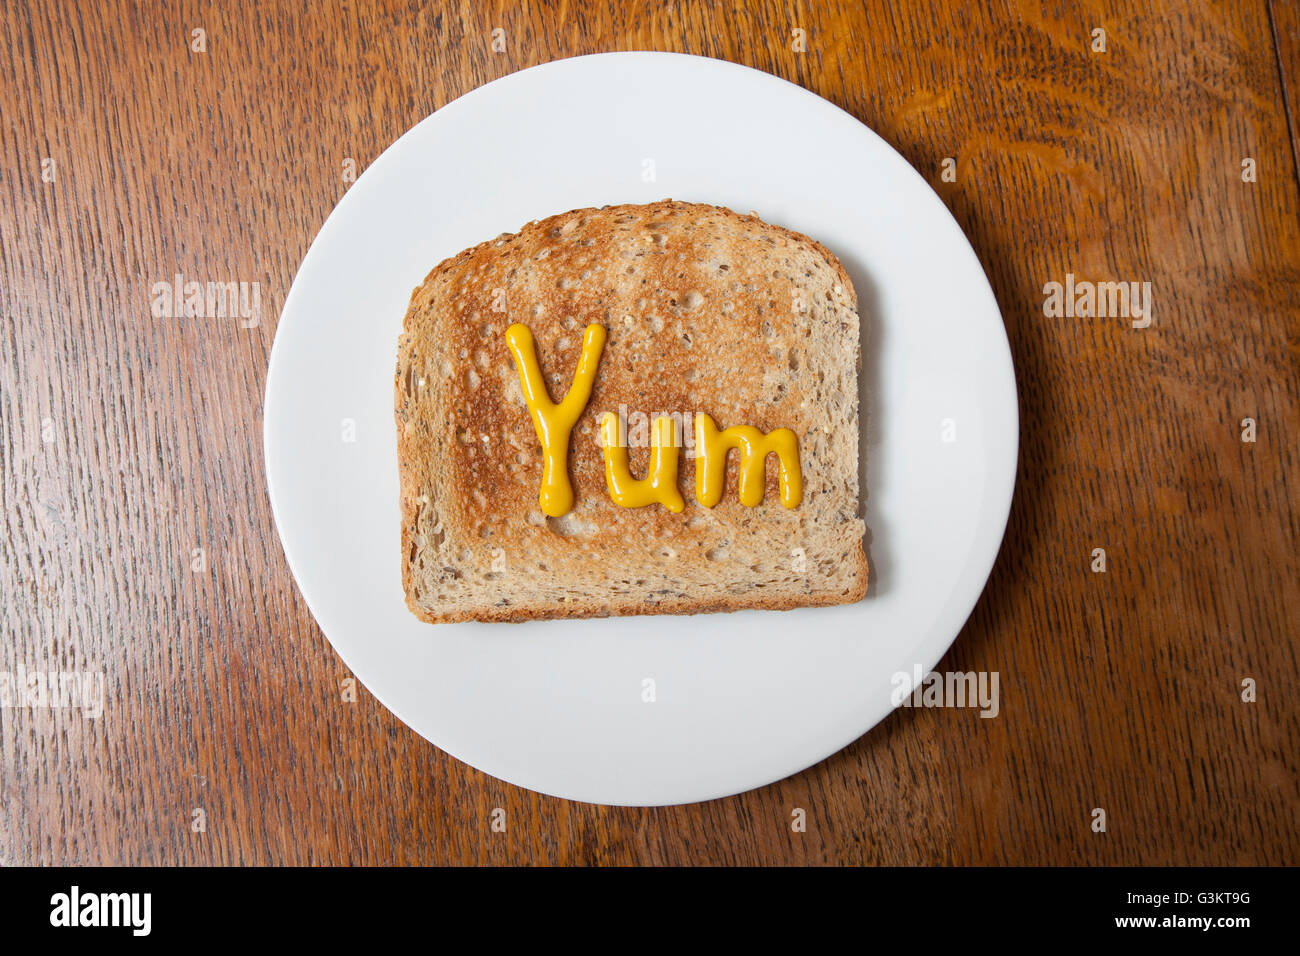 Overhead view of the word yum written on ham on toast in mustard - Stock Image